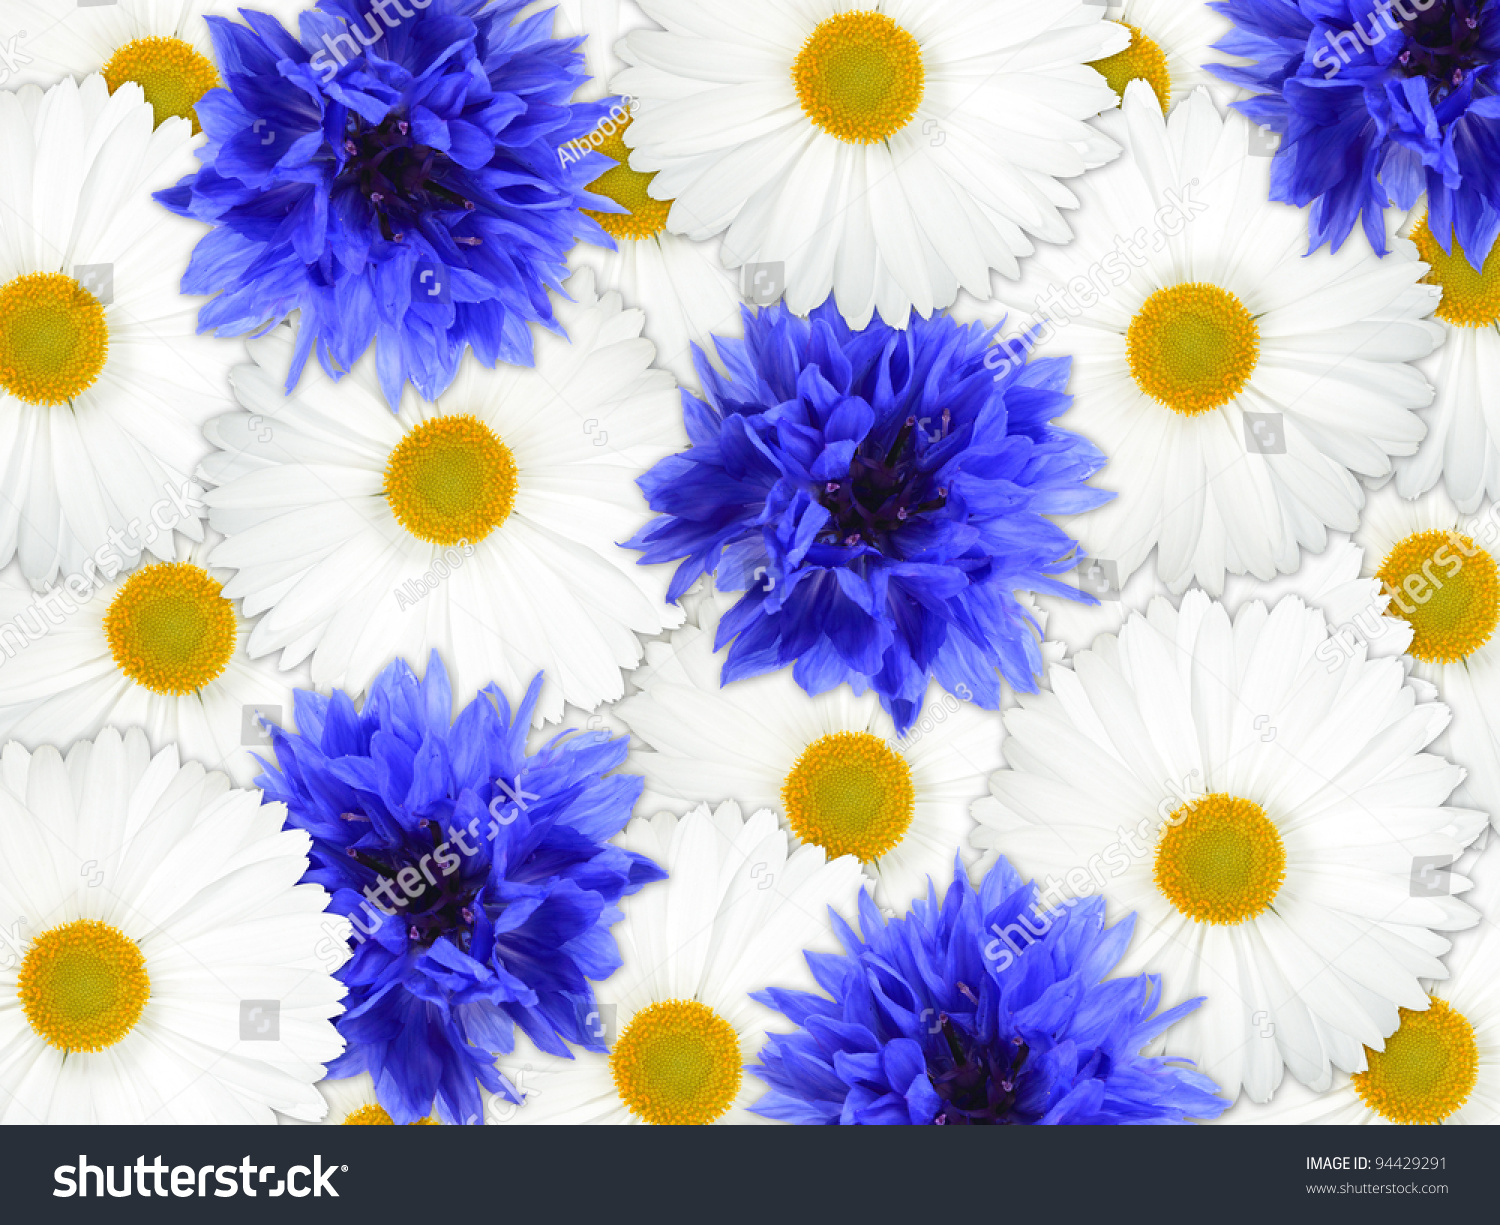 background of blue and white flowers for your design. closeup, Natural flower